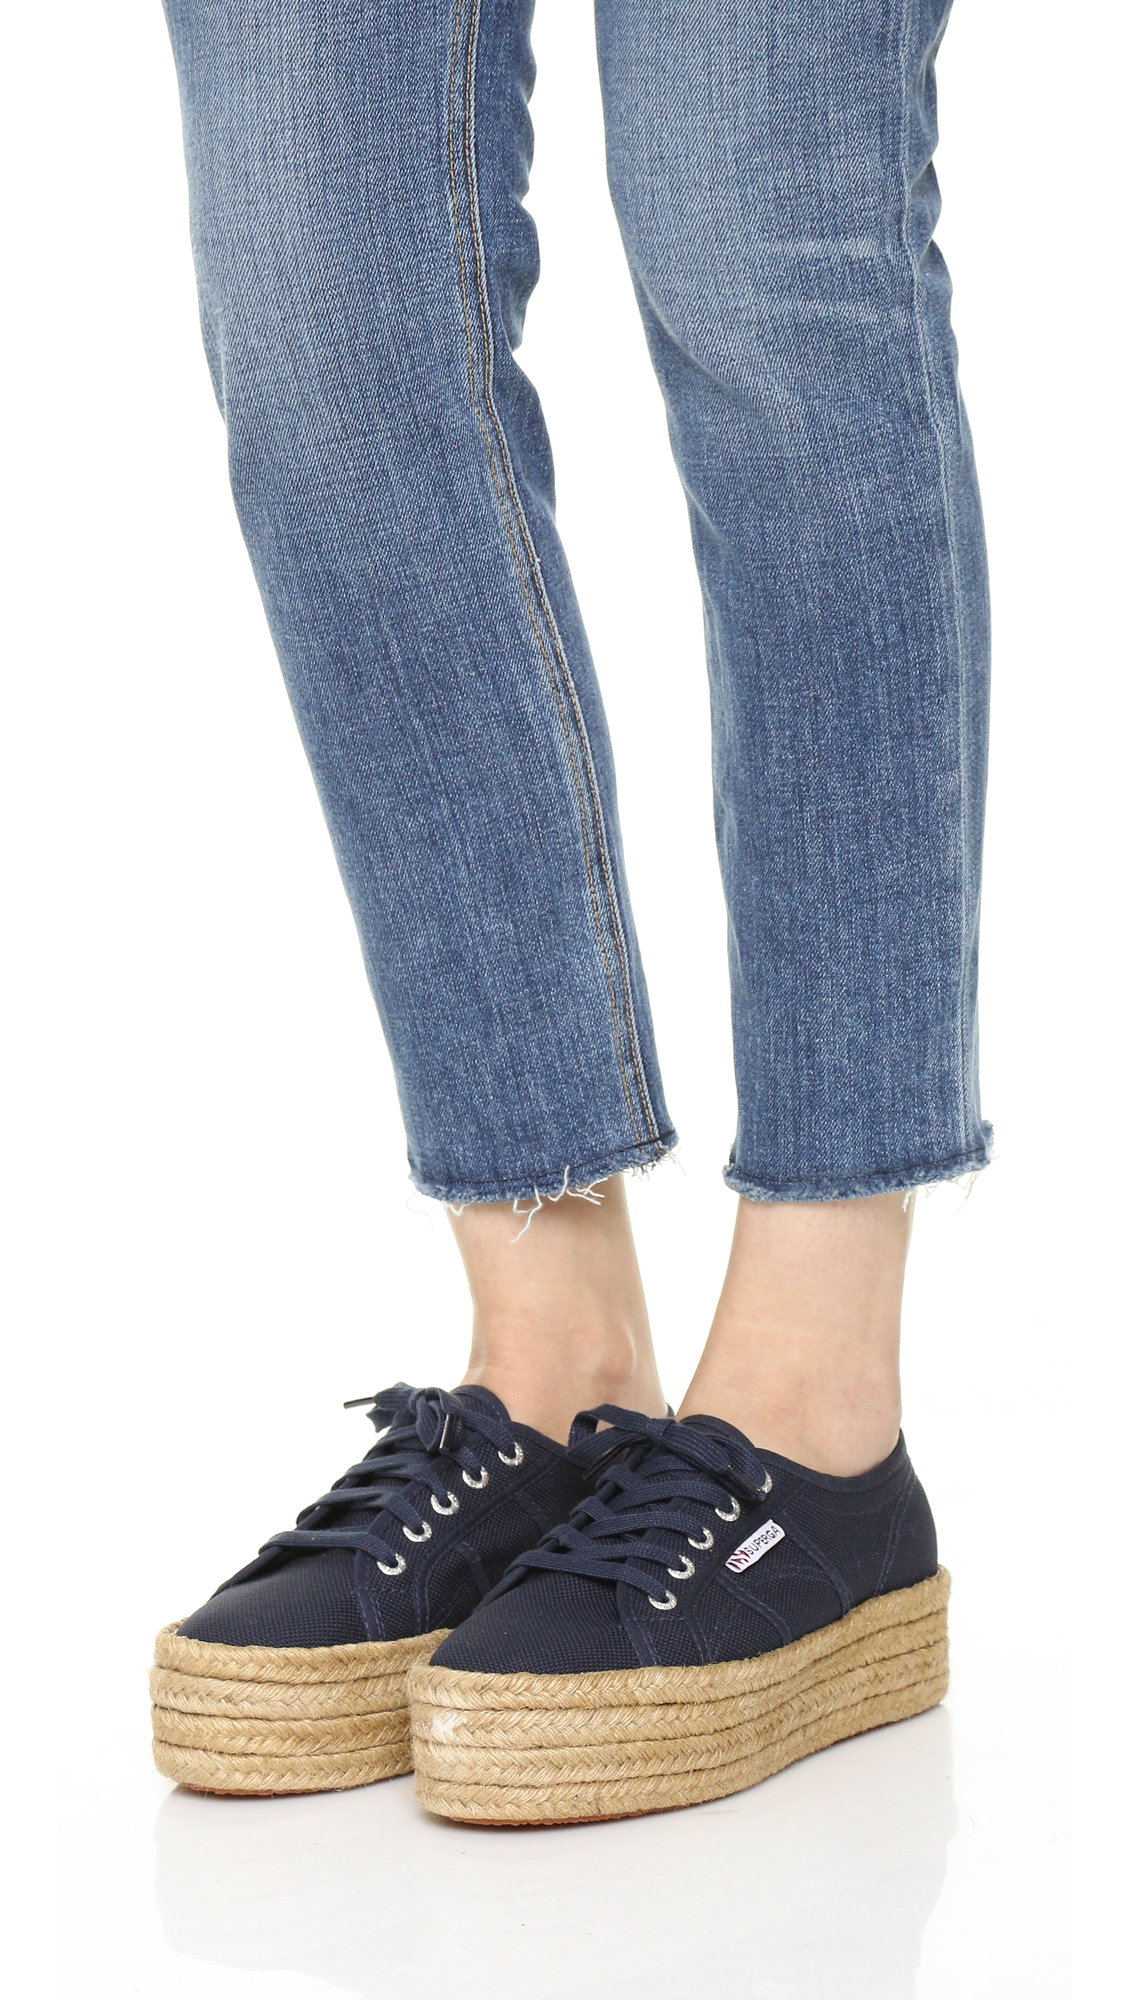 Low Shipping For Sale For Cheap Online FOOTWEAR - Espadrilles Superga Recommend Cheap Online Discount Fashionable jTU3HN